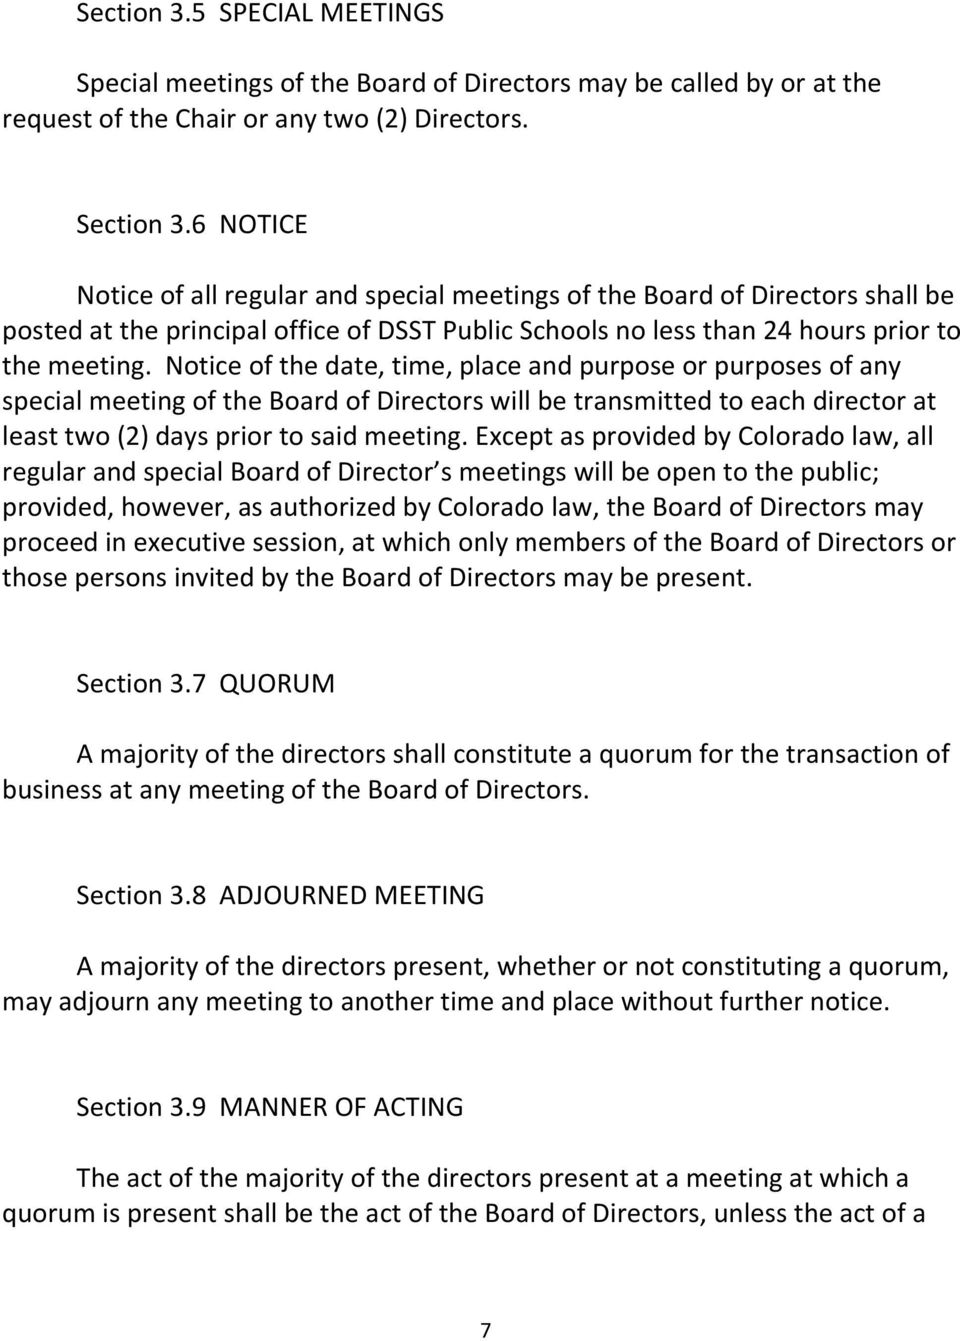 Notice of the date, time, place and purpose or purposes of any special meeting of the Board of Directors will be transmitted to each director at least two (2) days prior to said meeting.